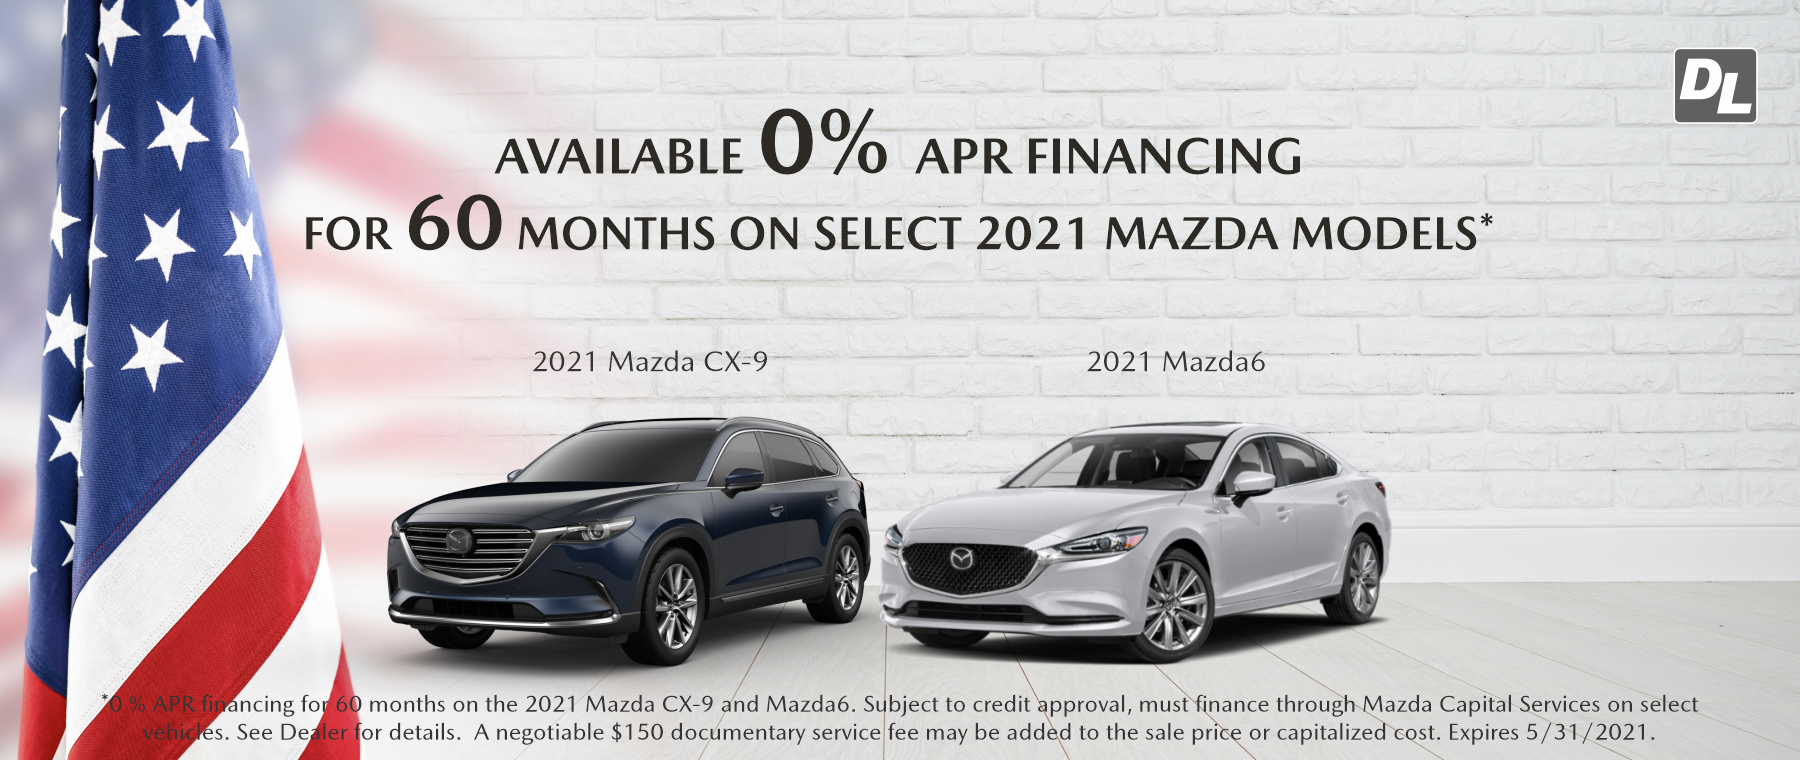 2021MayBanners-Mazda-0for60